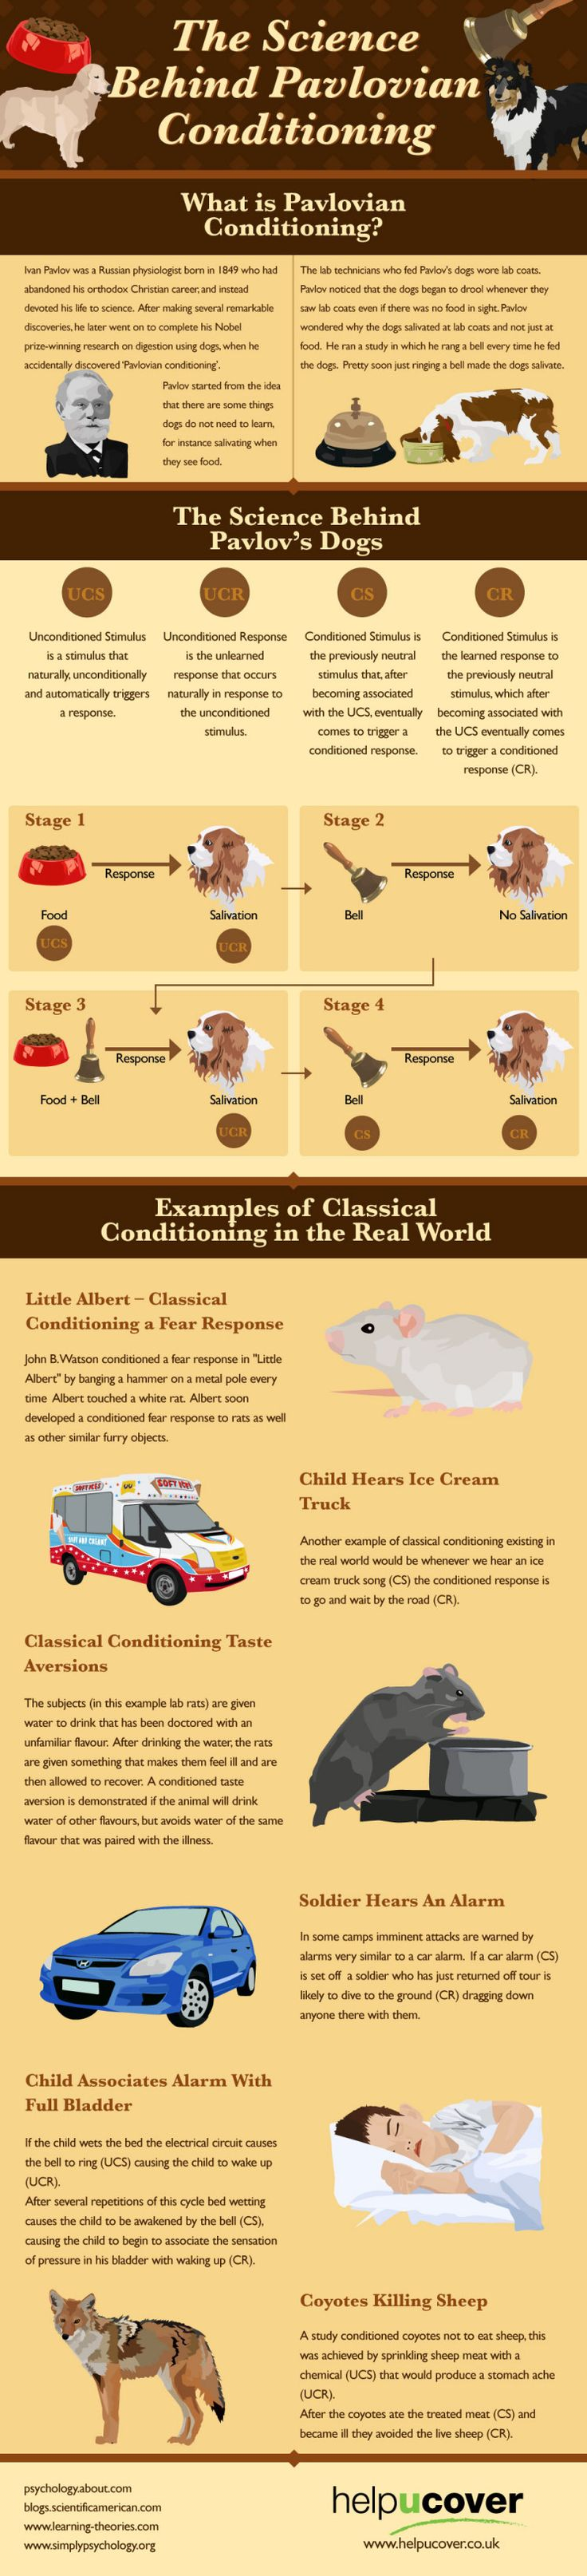 The science behind Pavlovian conditioning [infographic]